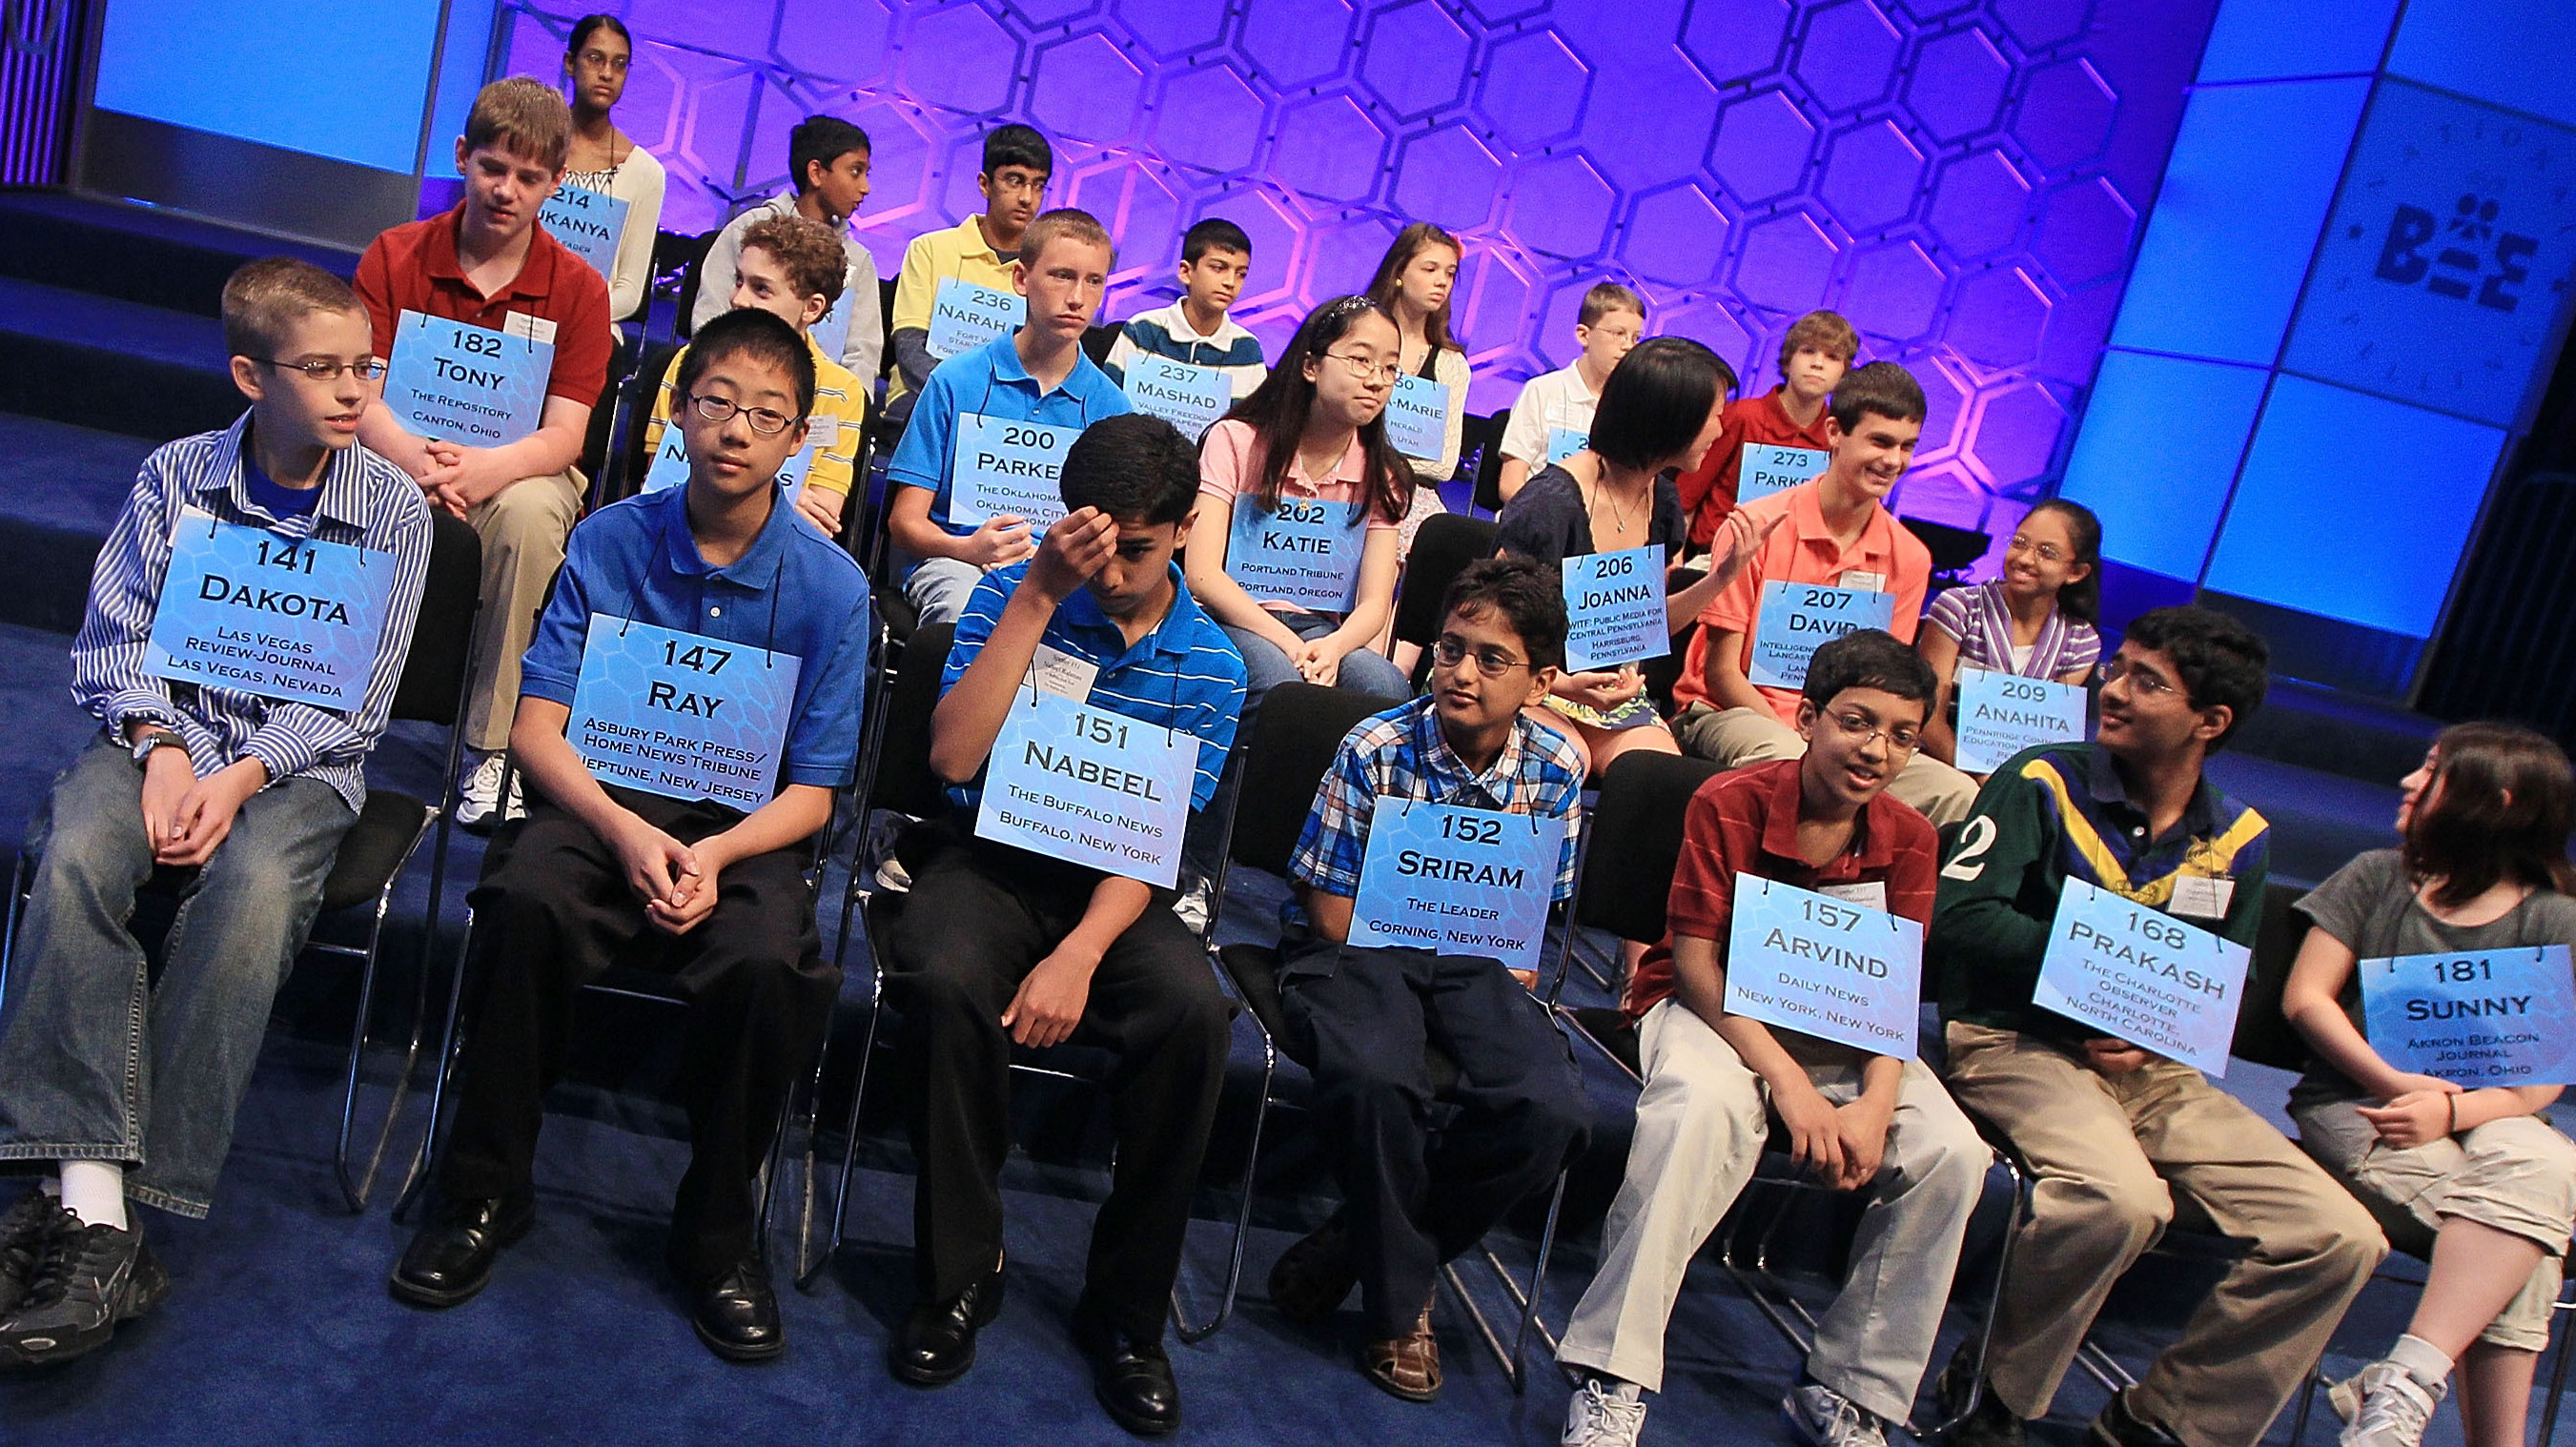 Thank G-O-O-D-N-E-S-S: The National Spelling Bee Adds Meaning | NCPR